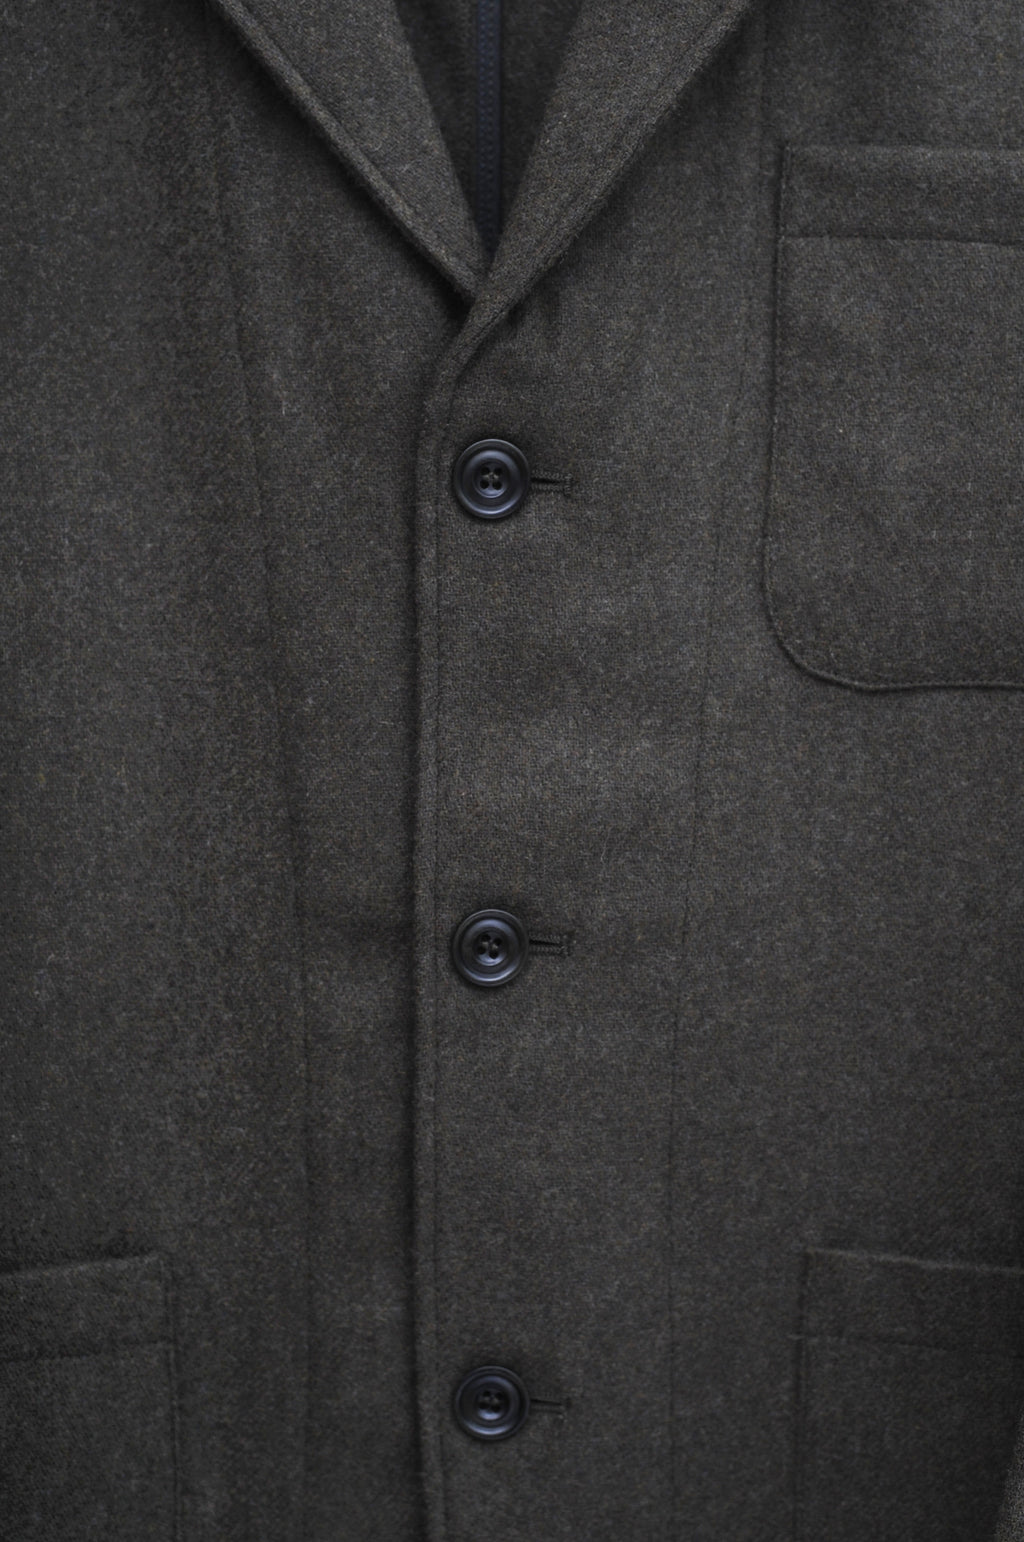 Jobs Jacket in Army Green